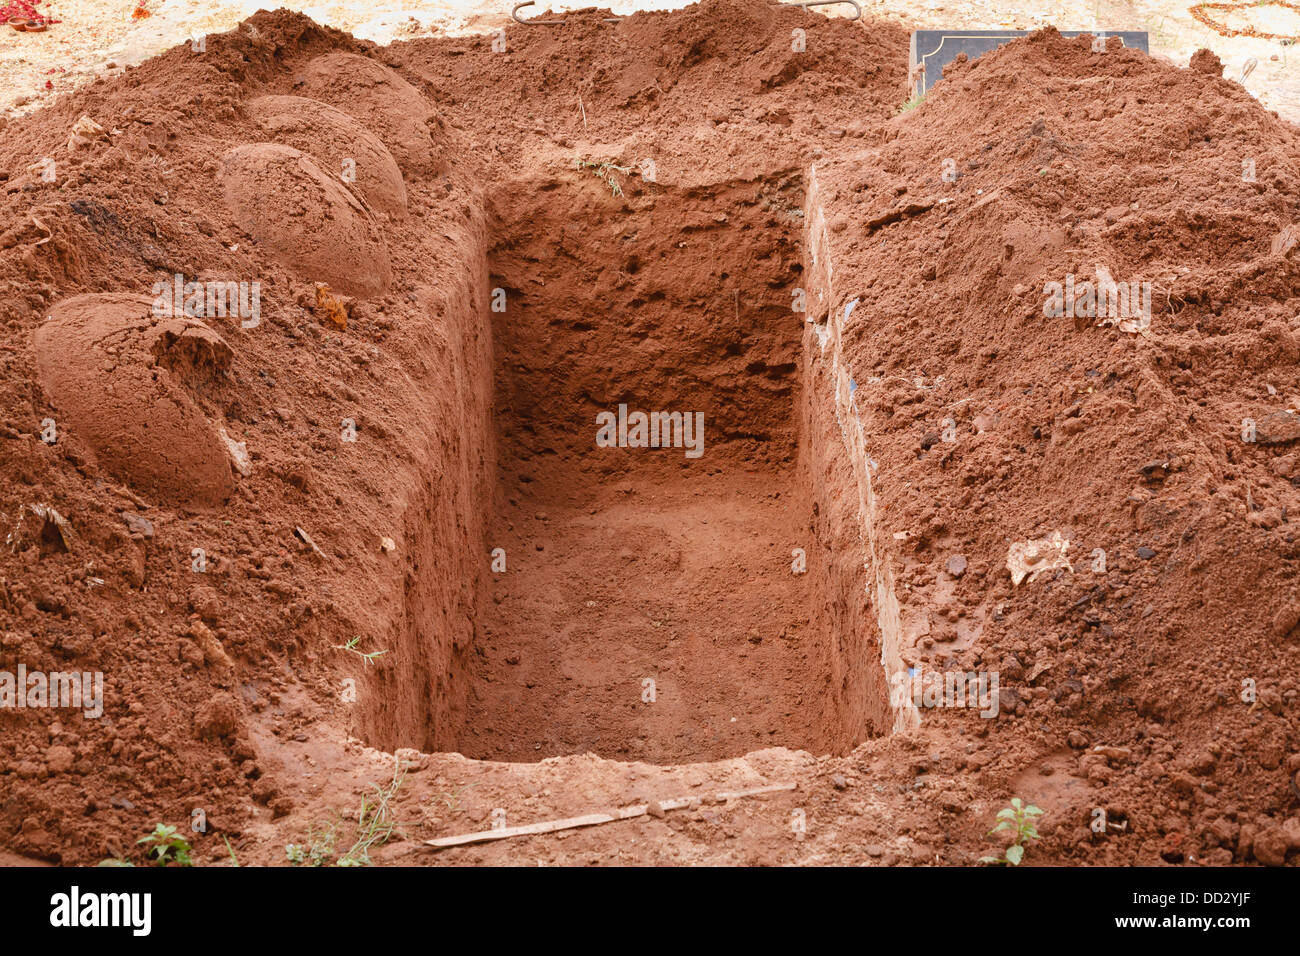 Open grave freshly dug for a burial - Stock Image